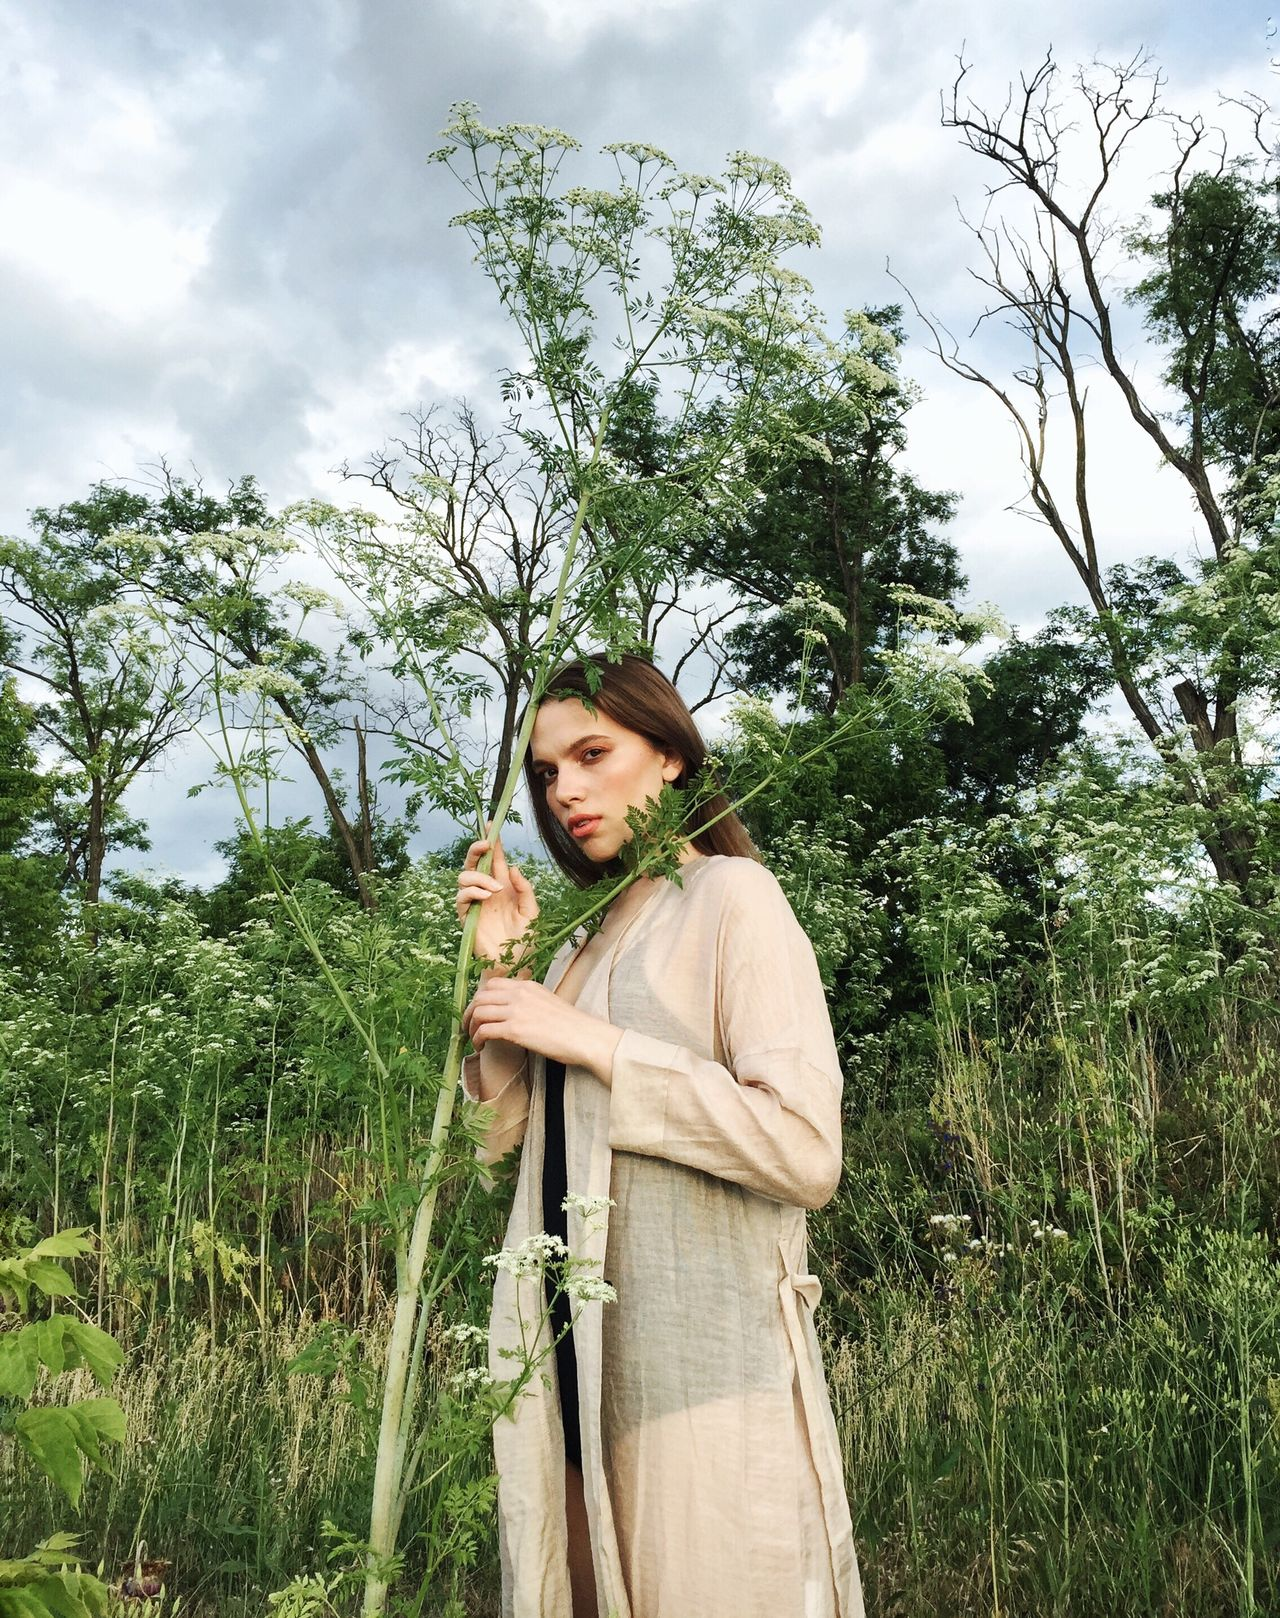 Portrait of woman standing by plant against sky